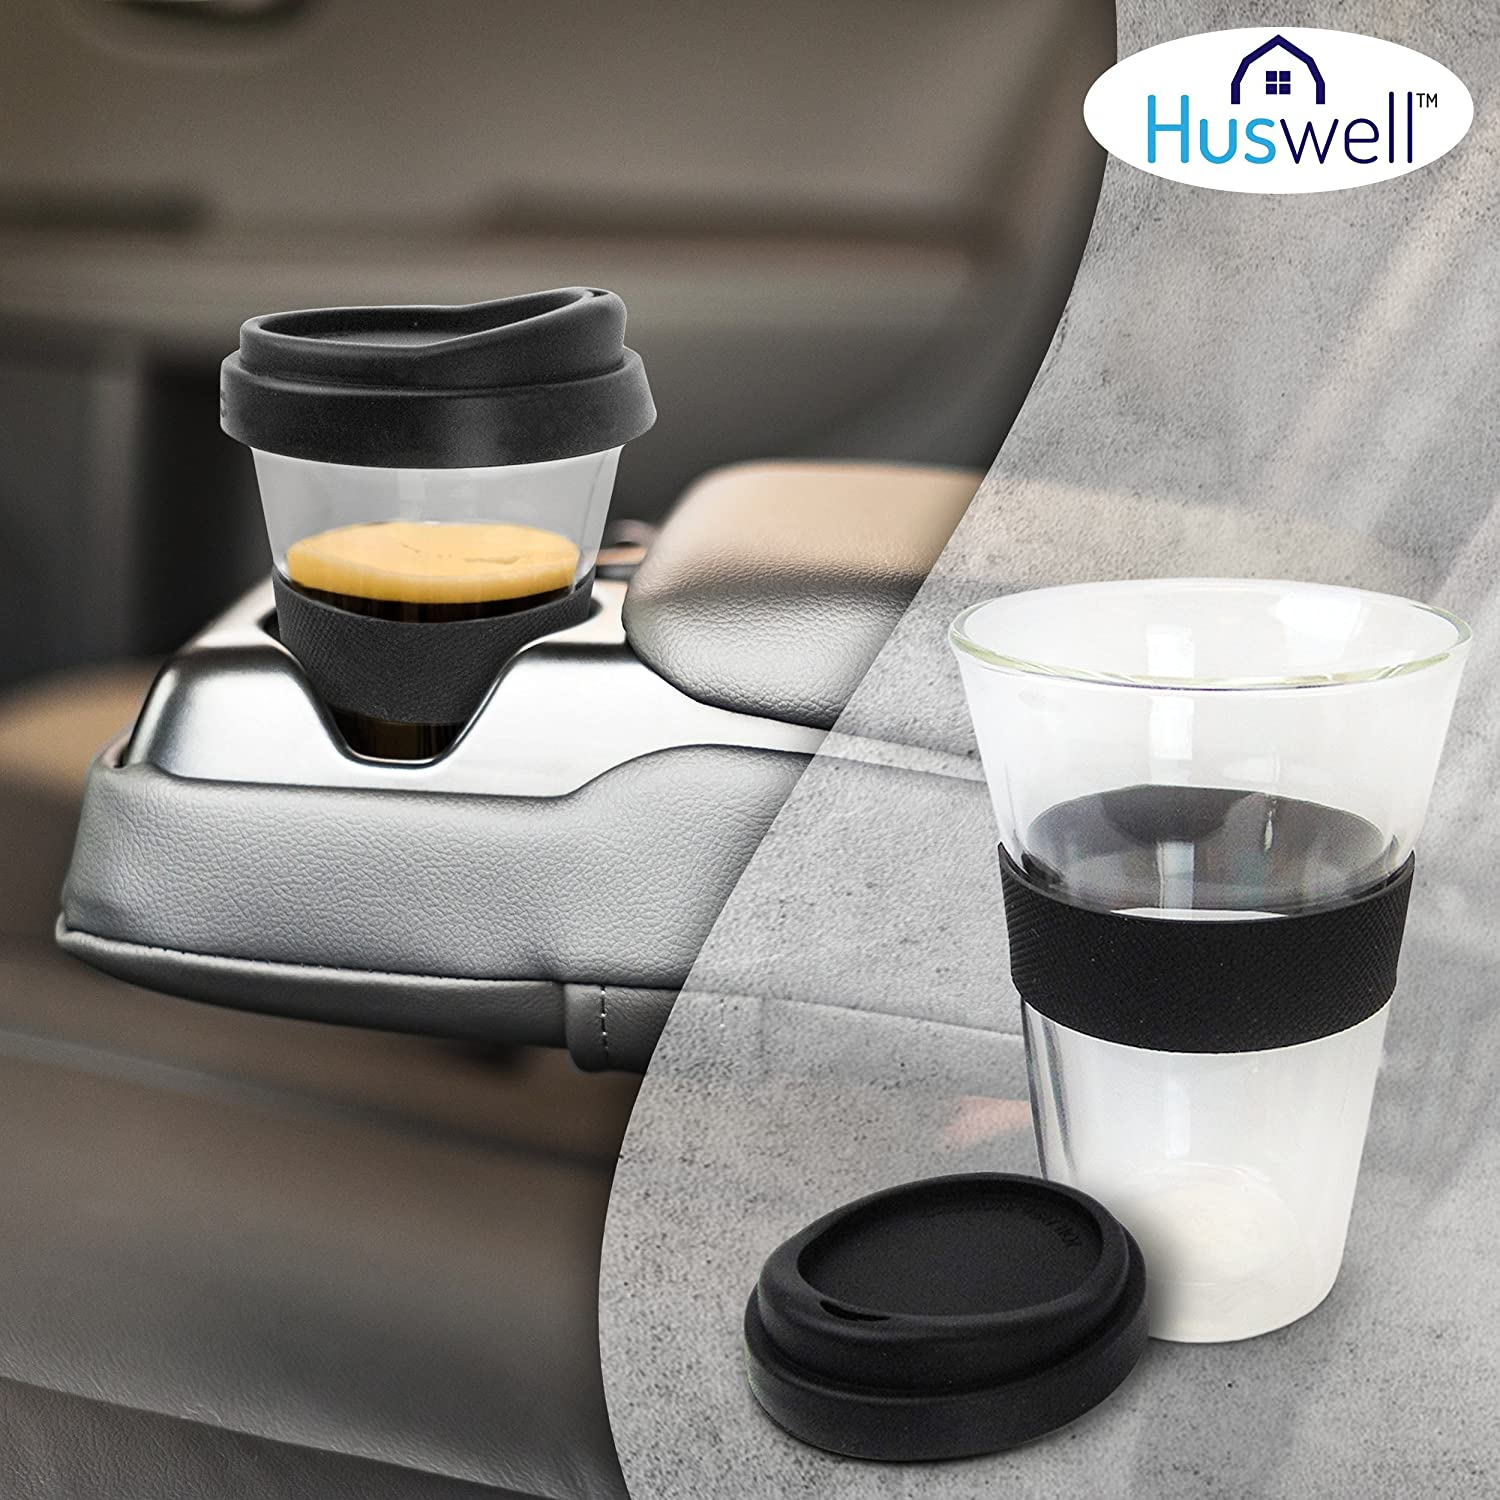 Double wall coffee cup likewise vintage pyrex clear glass refrigerator - Amazon Com Huswell Insulated Double Wall Glass Coffee Travel Tumbler 10 Oz Kitchen Dining